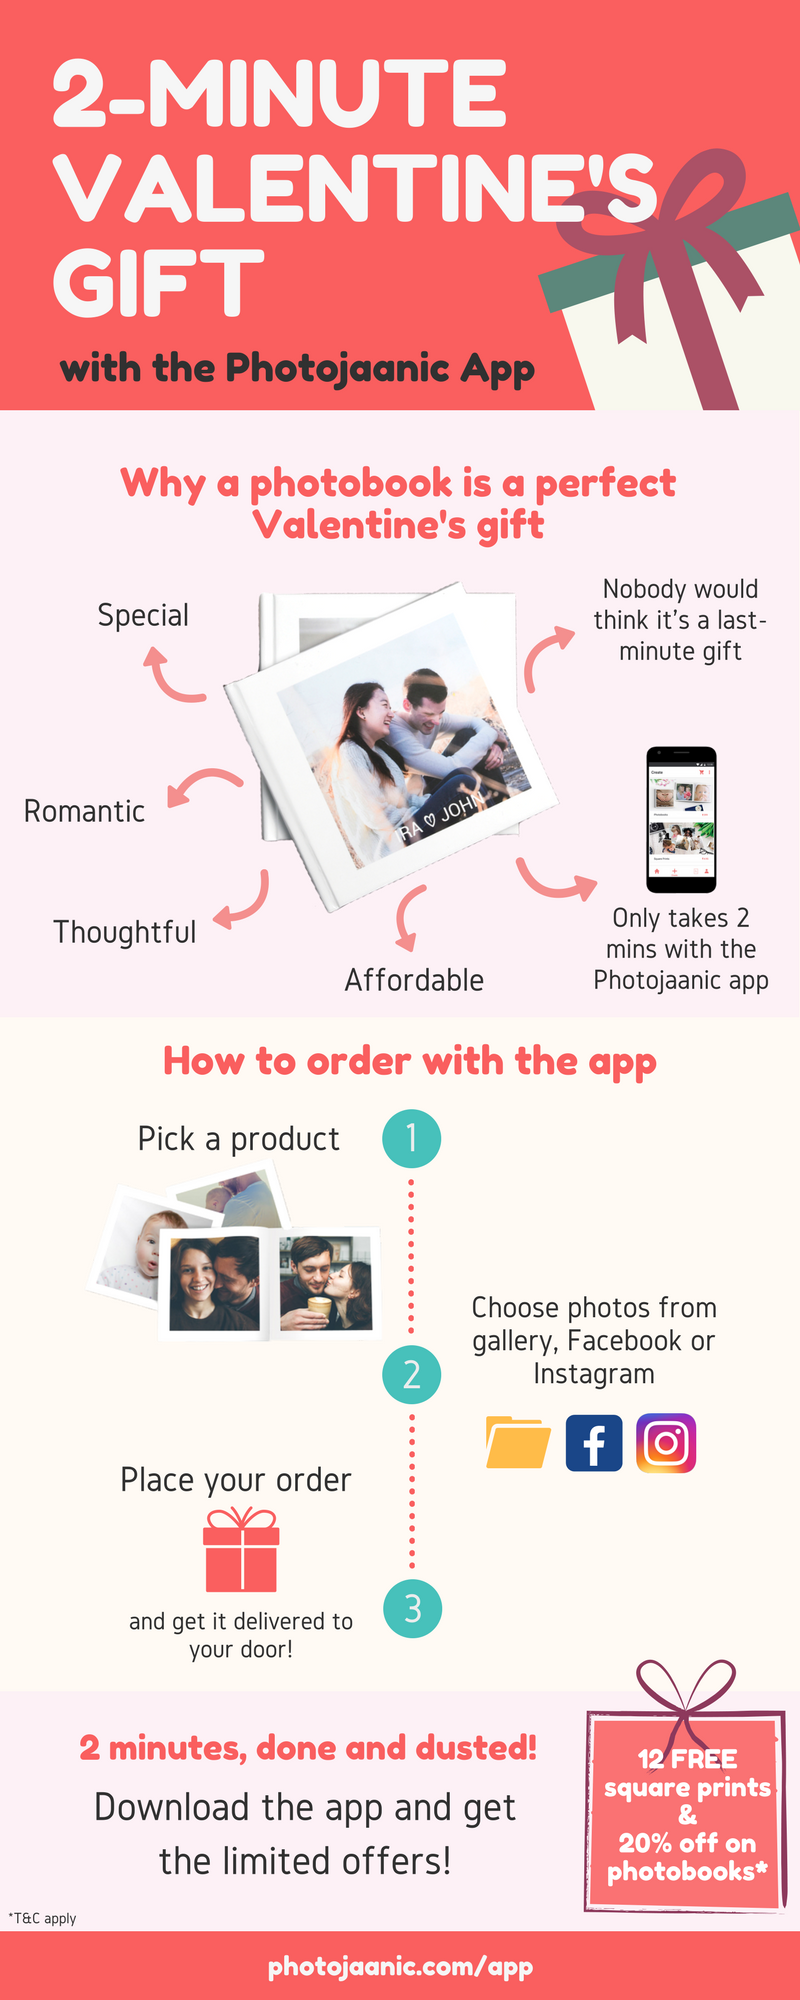 photo printing apps to print photos from phone - Photojaanic app